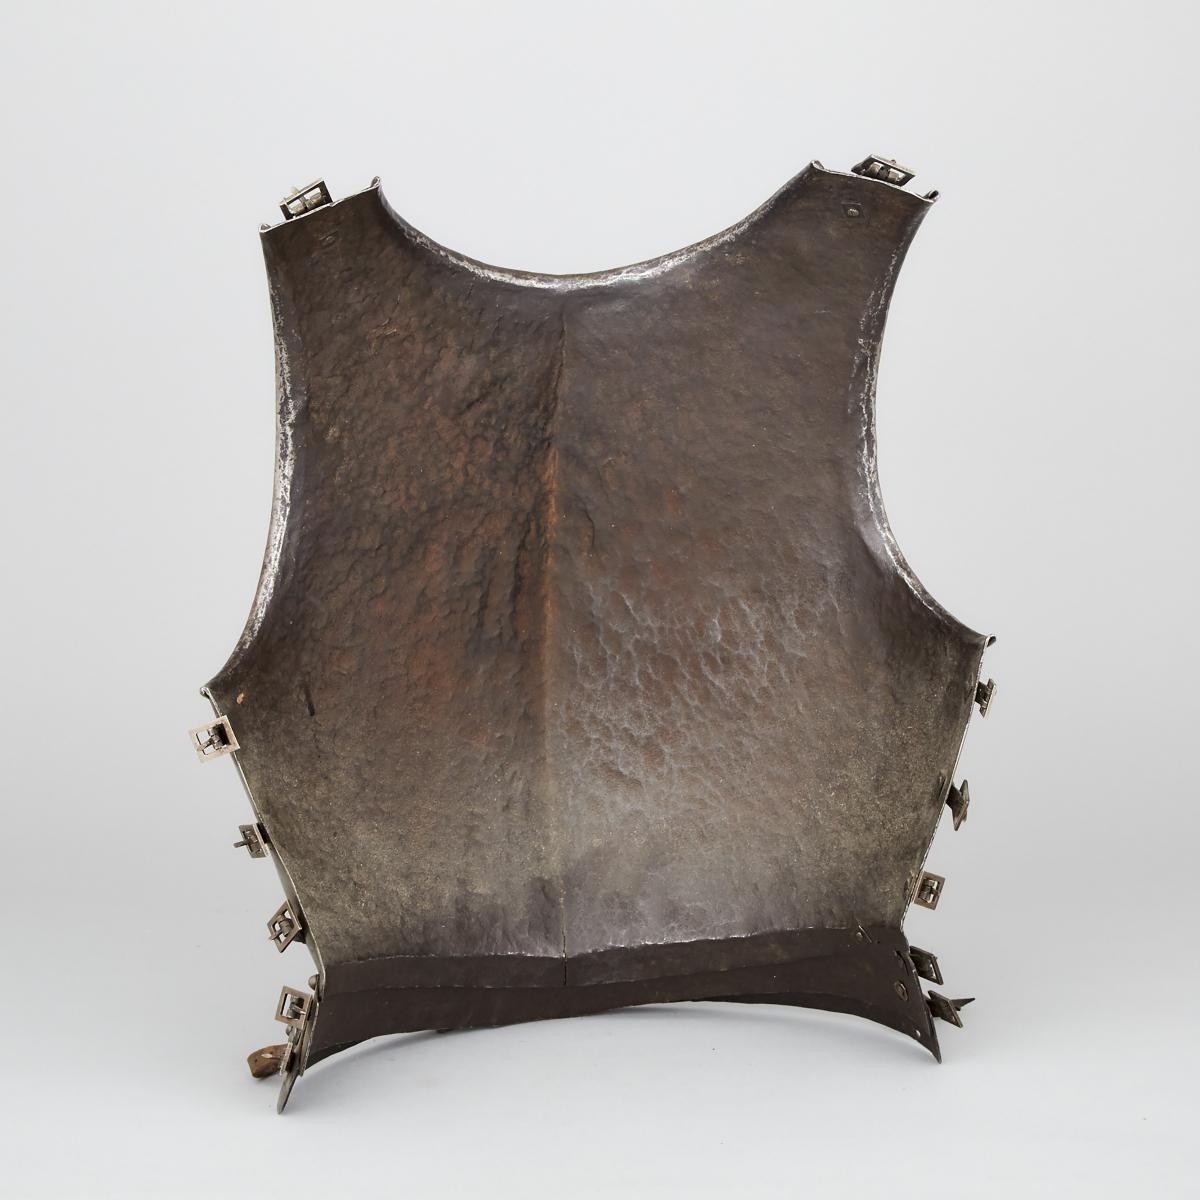 North Italian Infantry Breastplate, early 17th century, height 17.5 in — 44.5 cm - Image 2 of 2